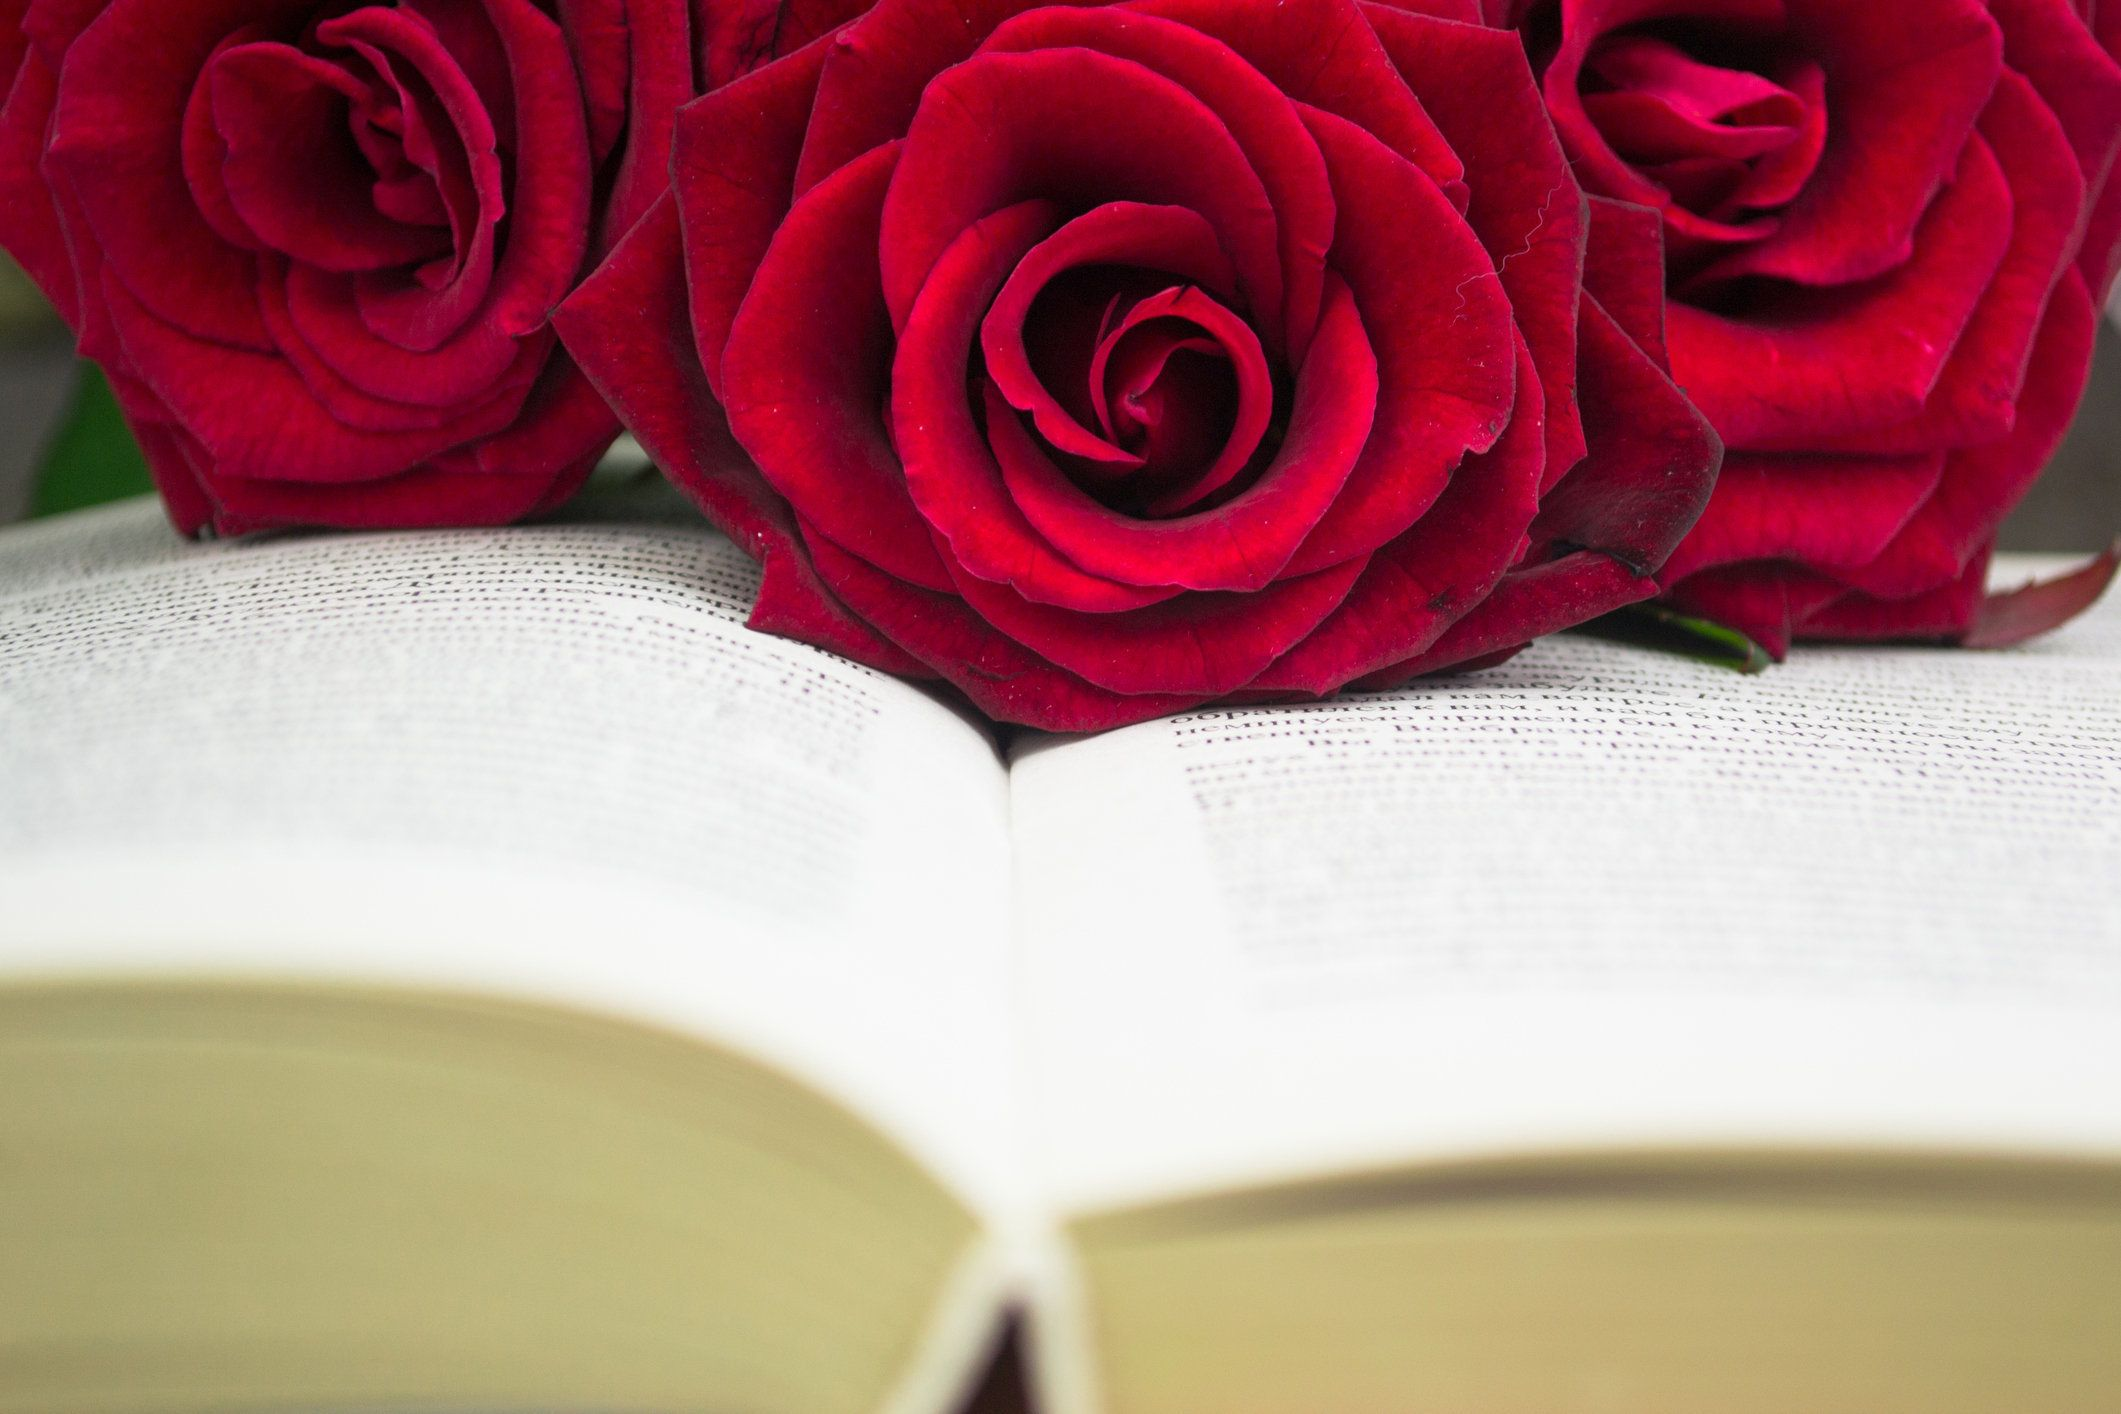 The open book and red roses. Close up